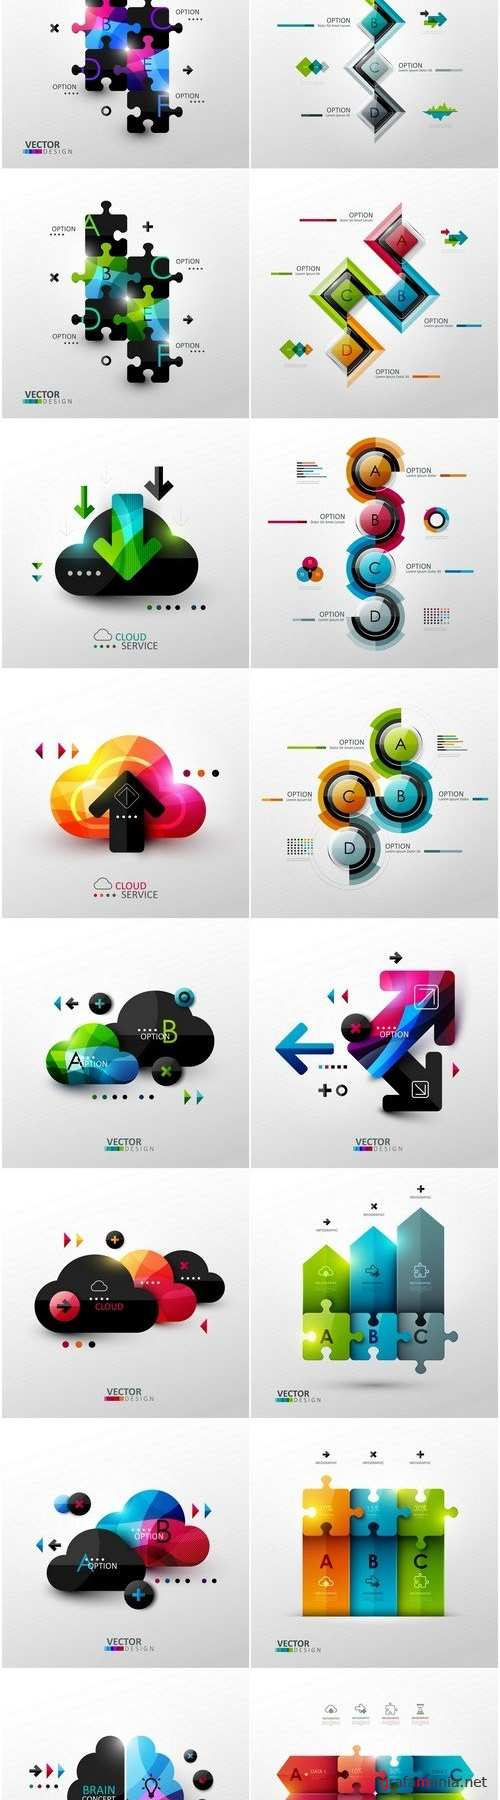 Infographics Design Templates 2 - Set of 16xEPS Professional Vector Stock